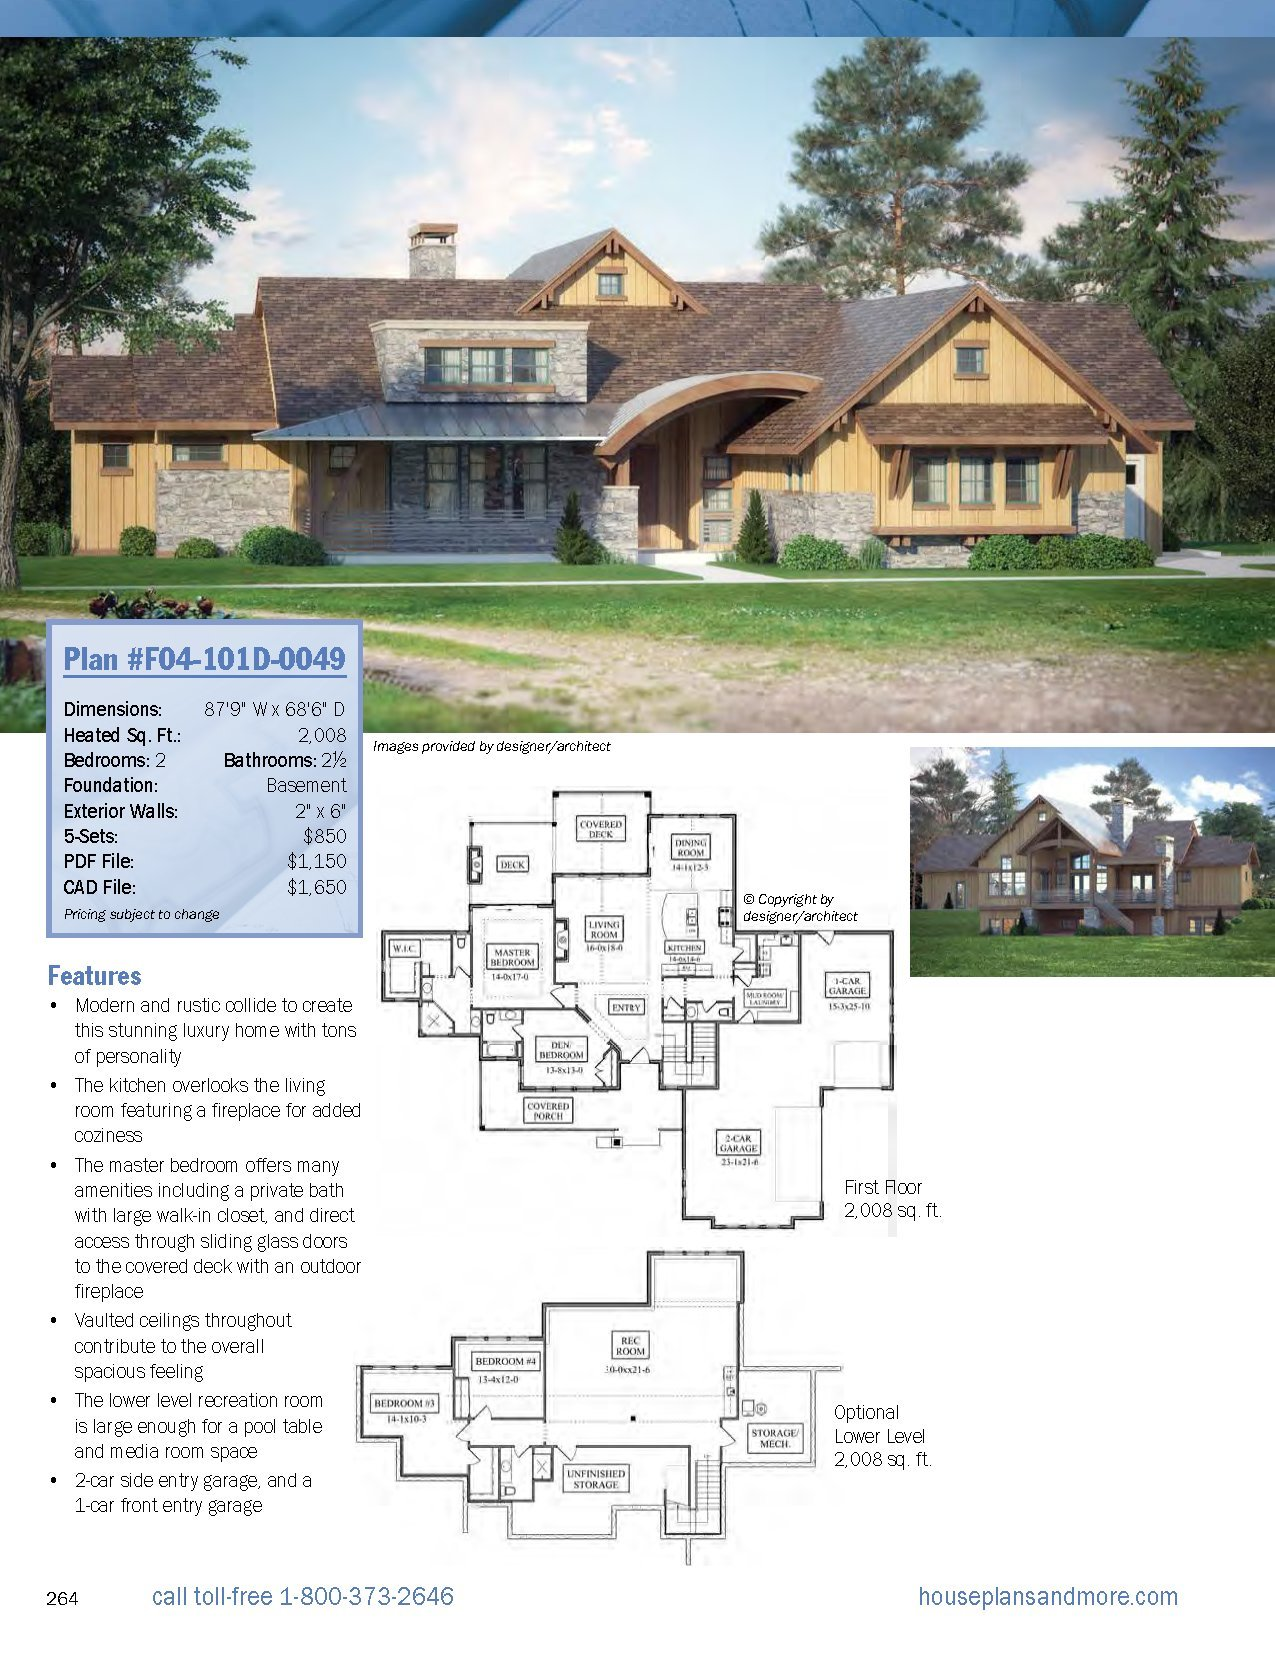 Best-Selling 1-Story Home Plans, Updated 4th Edition: Over 360 Dream ...